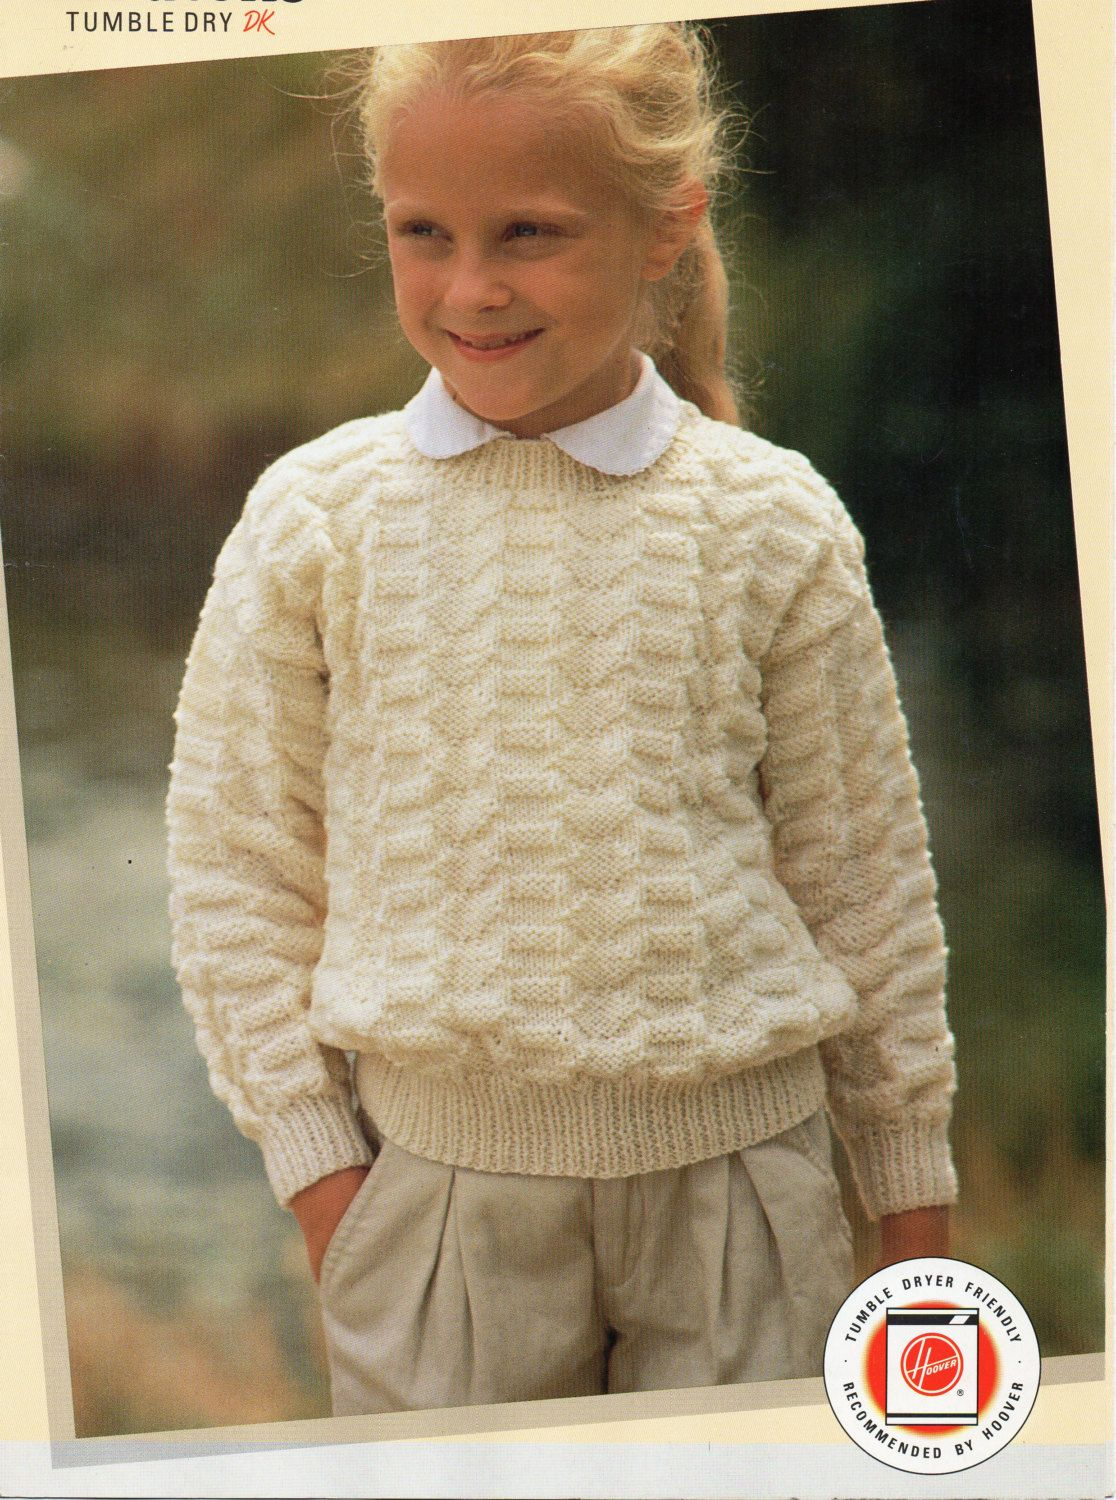 Childrens Sweater Knitting Pattern Round Neck Patterned Sweater DK ...